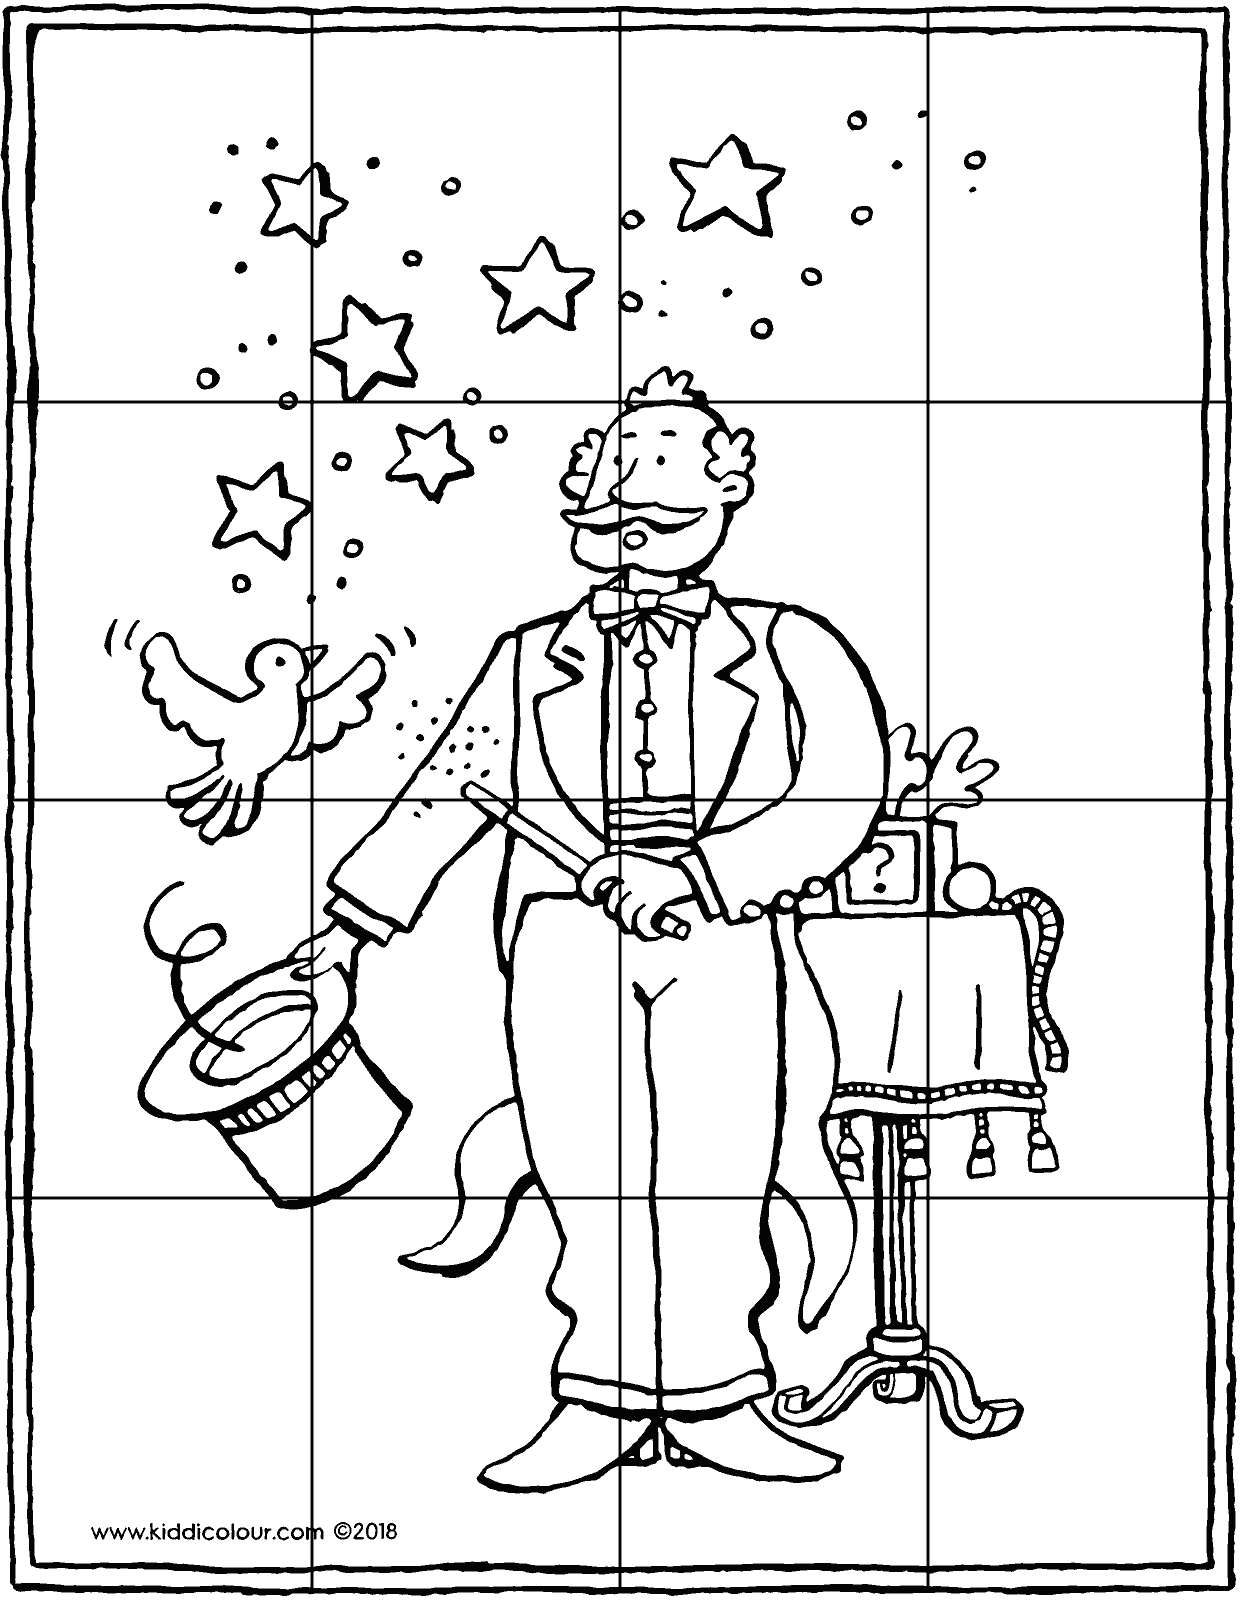 magician puzzle 16 pieces colouring page drawing picture 01V